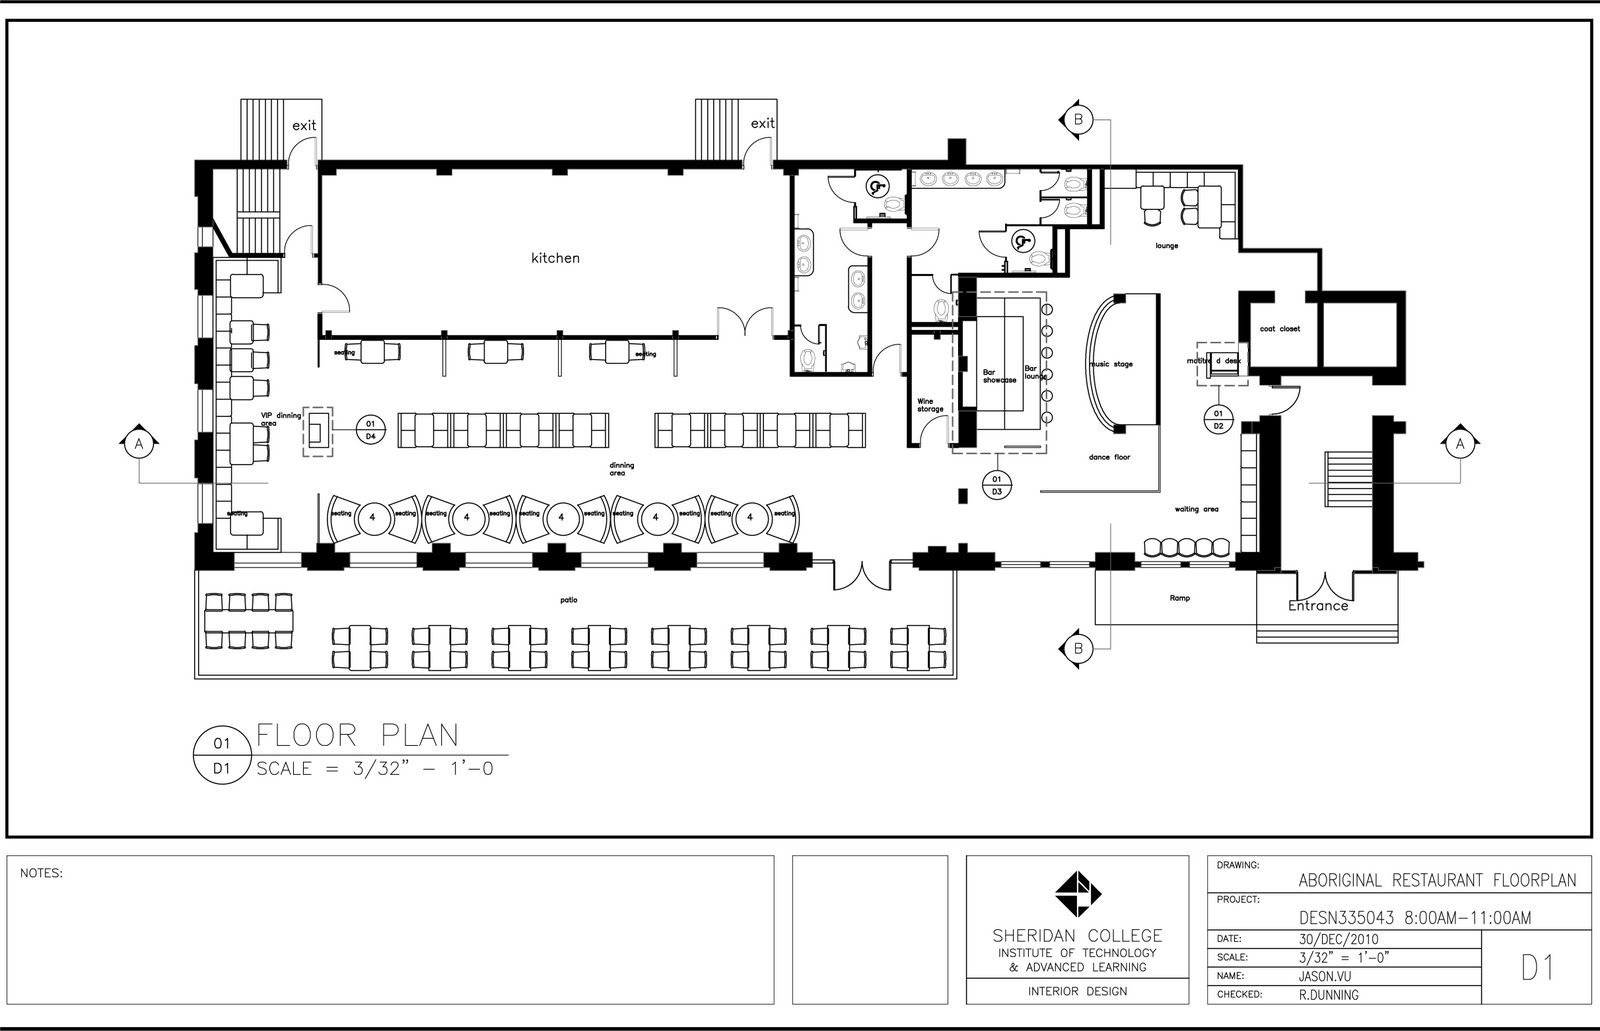 Restaurant floor plans opera house and the great outdoors for Blueprints of restaurant kitchen designs